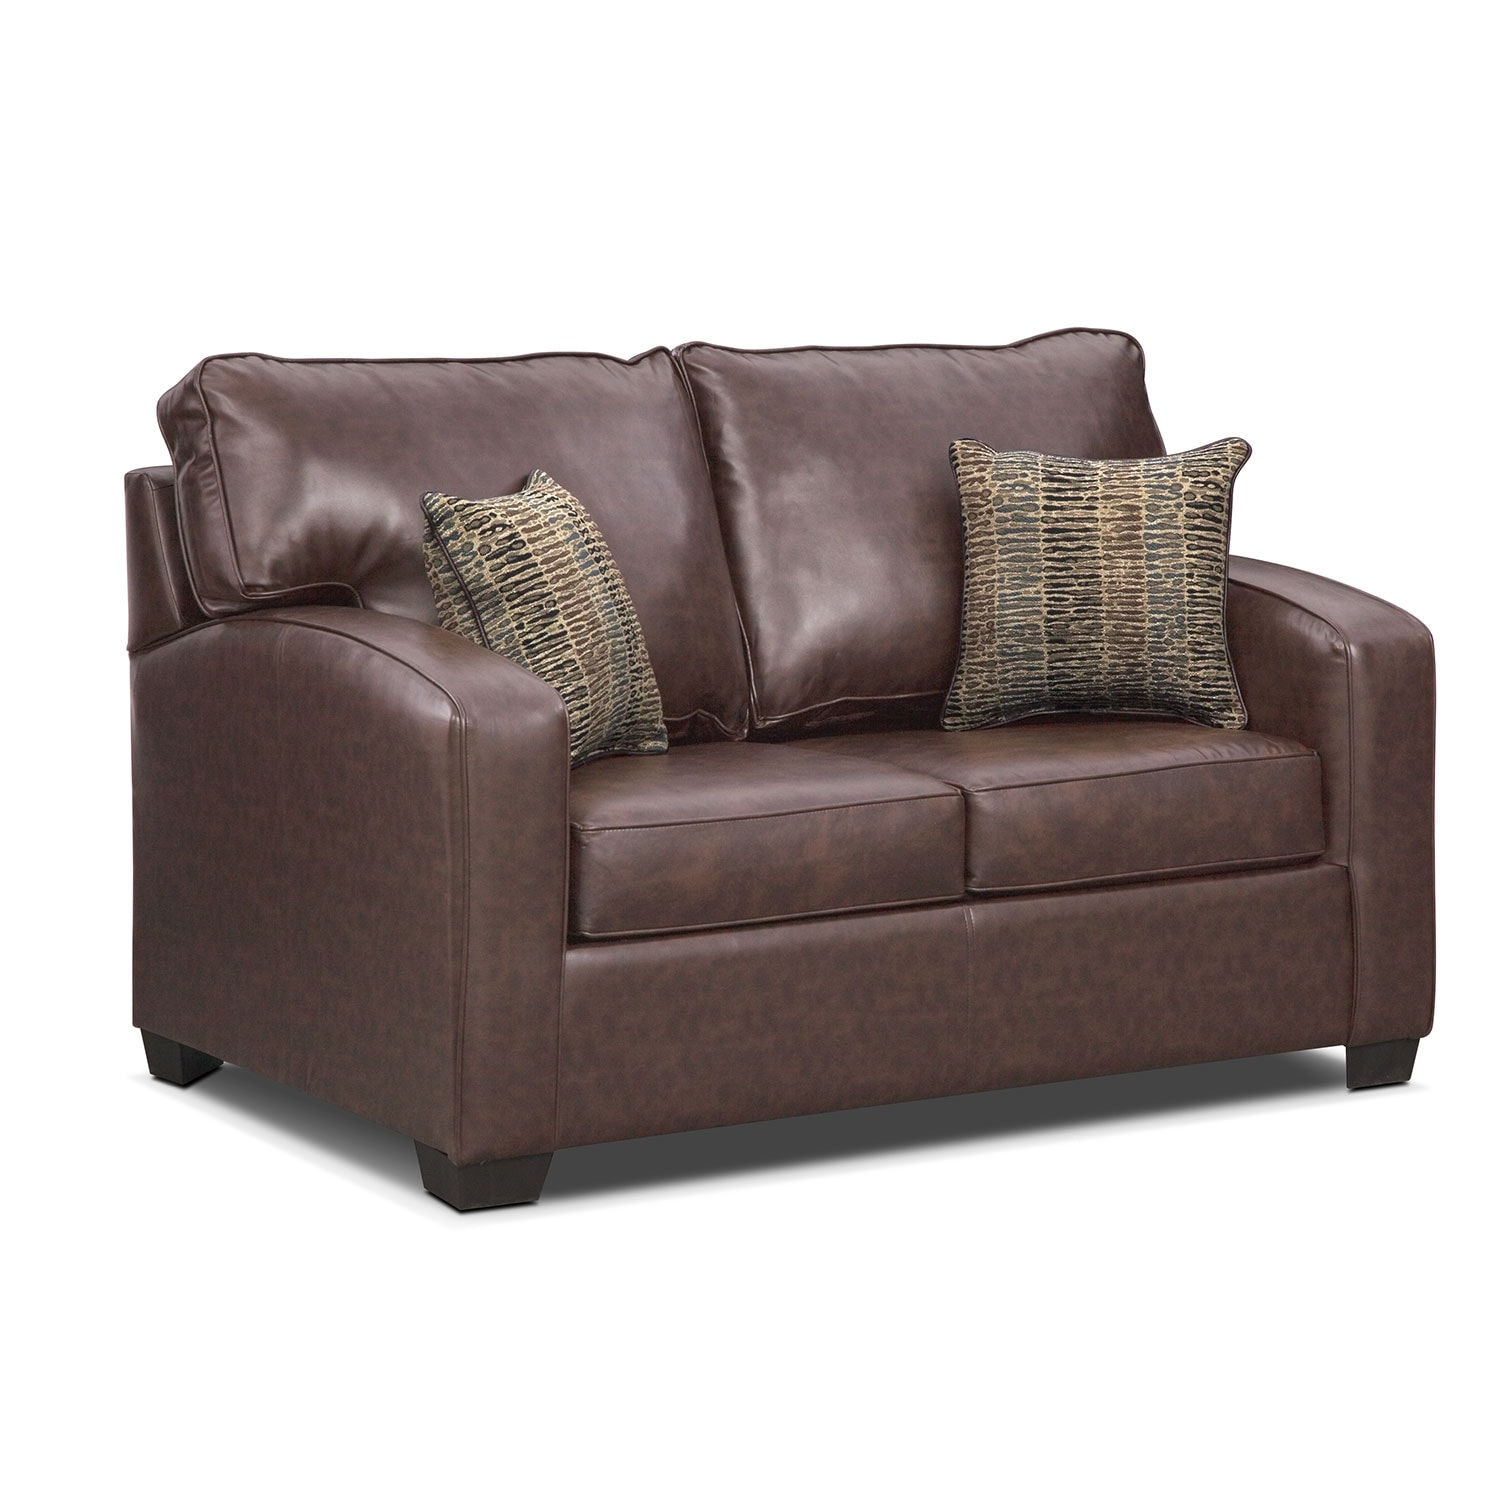 Brookline Twin Innerspring Sleeper Sofa Value City Furniture